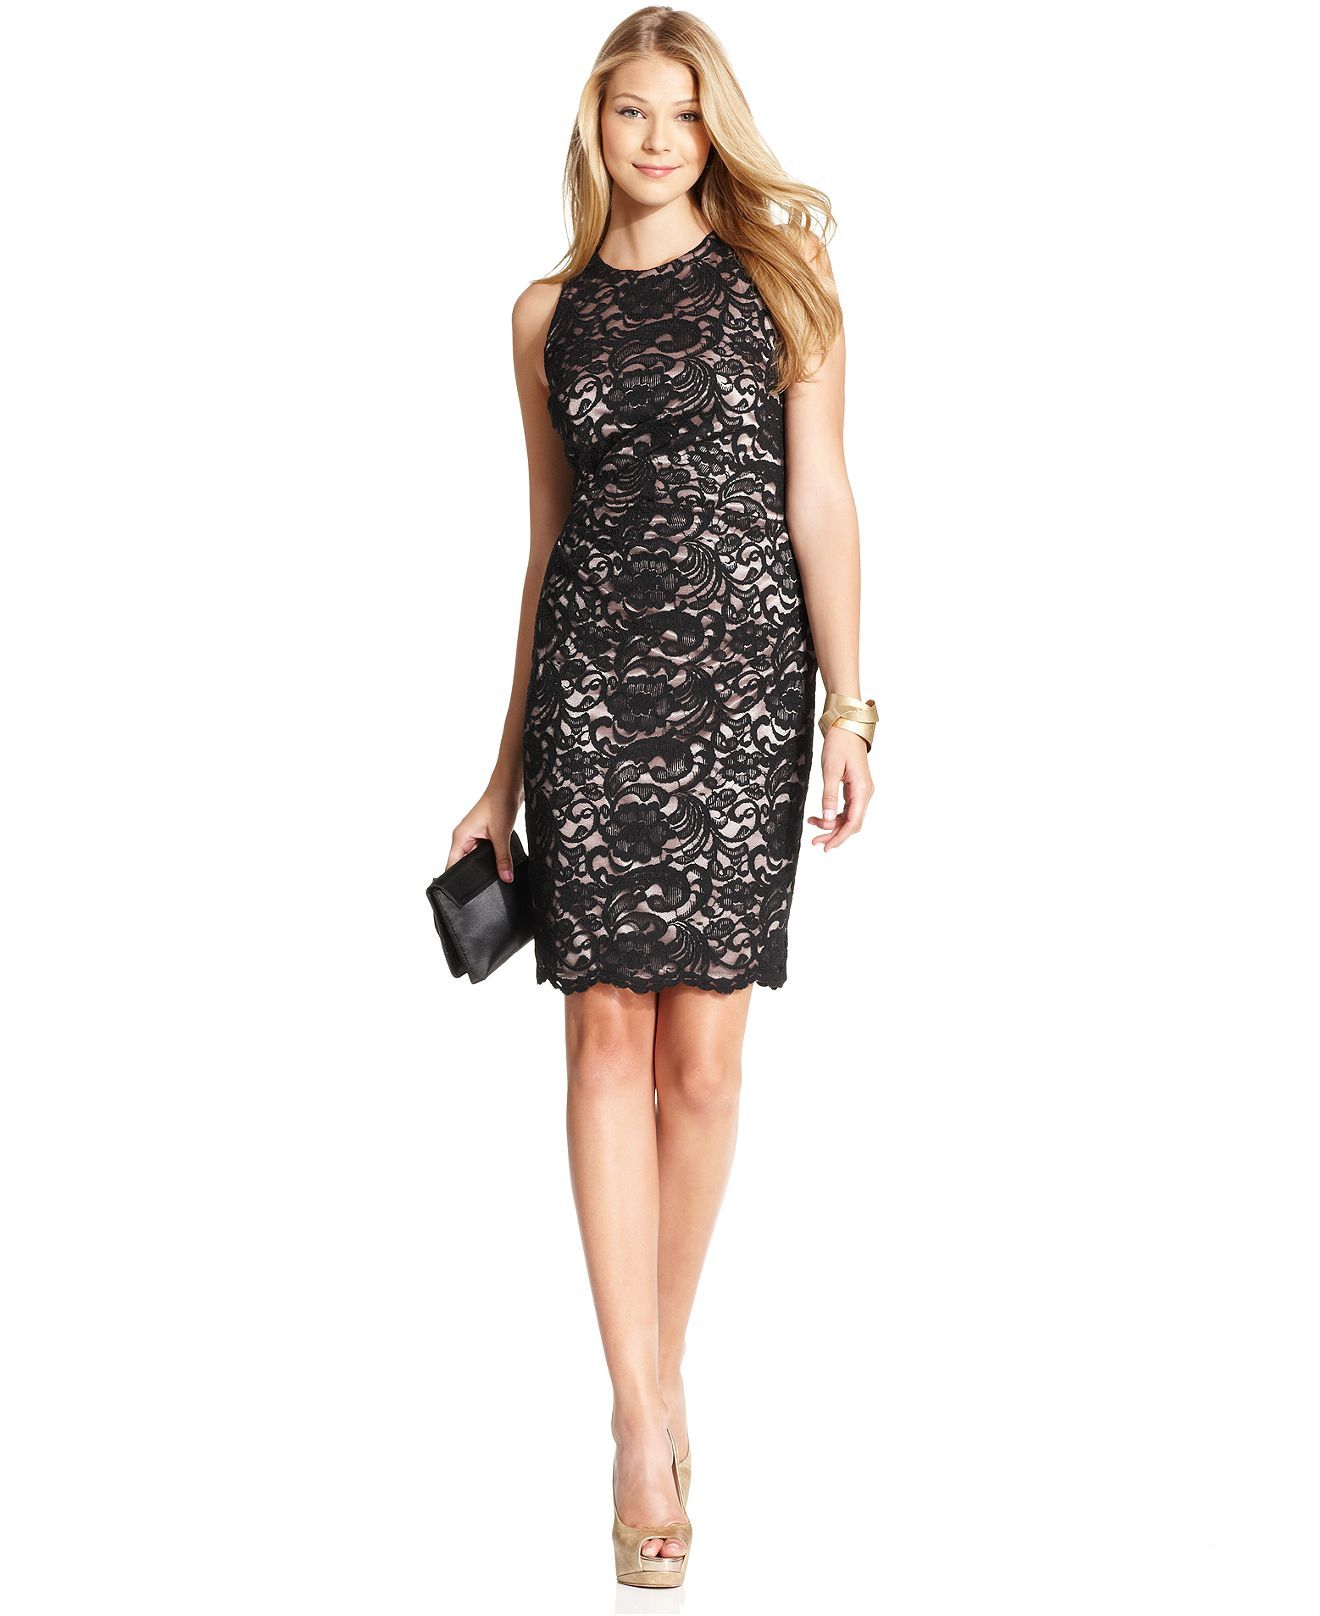 Xscape dress sleeveless lace cocktail sheath womens dresses xscape dress sleeveless lace cocktail sheath womens dresses macys ombrellifo Images